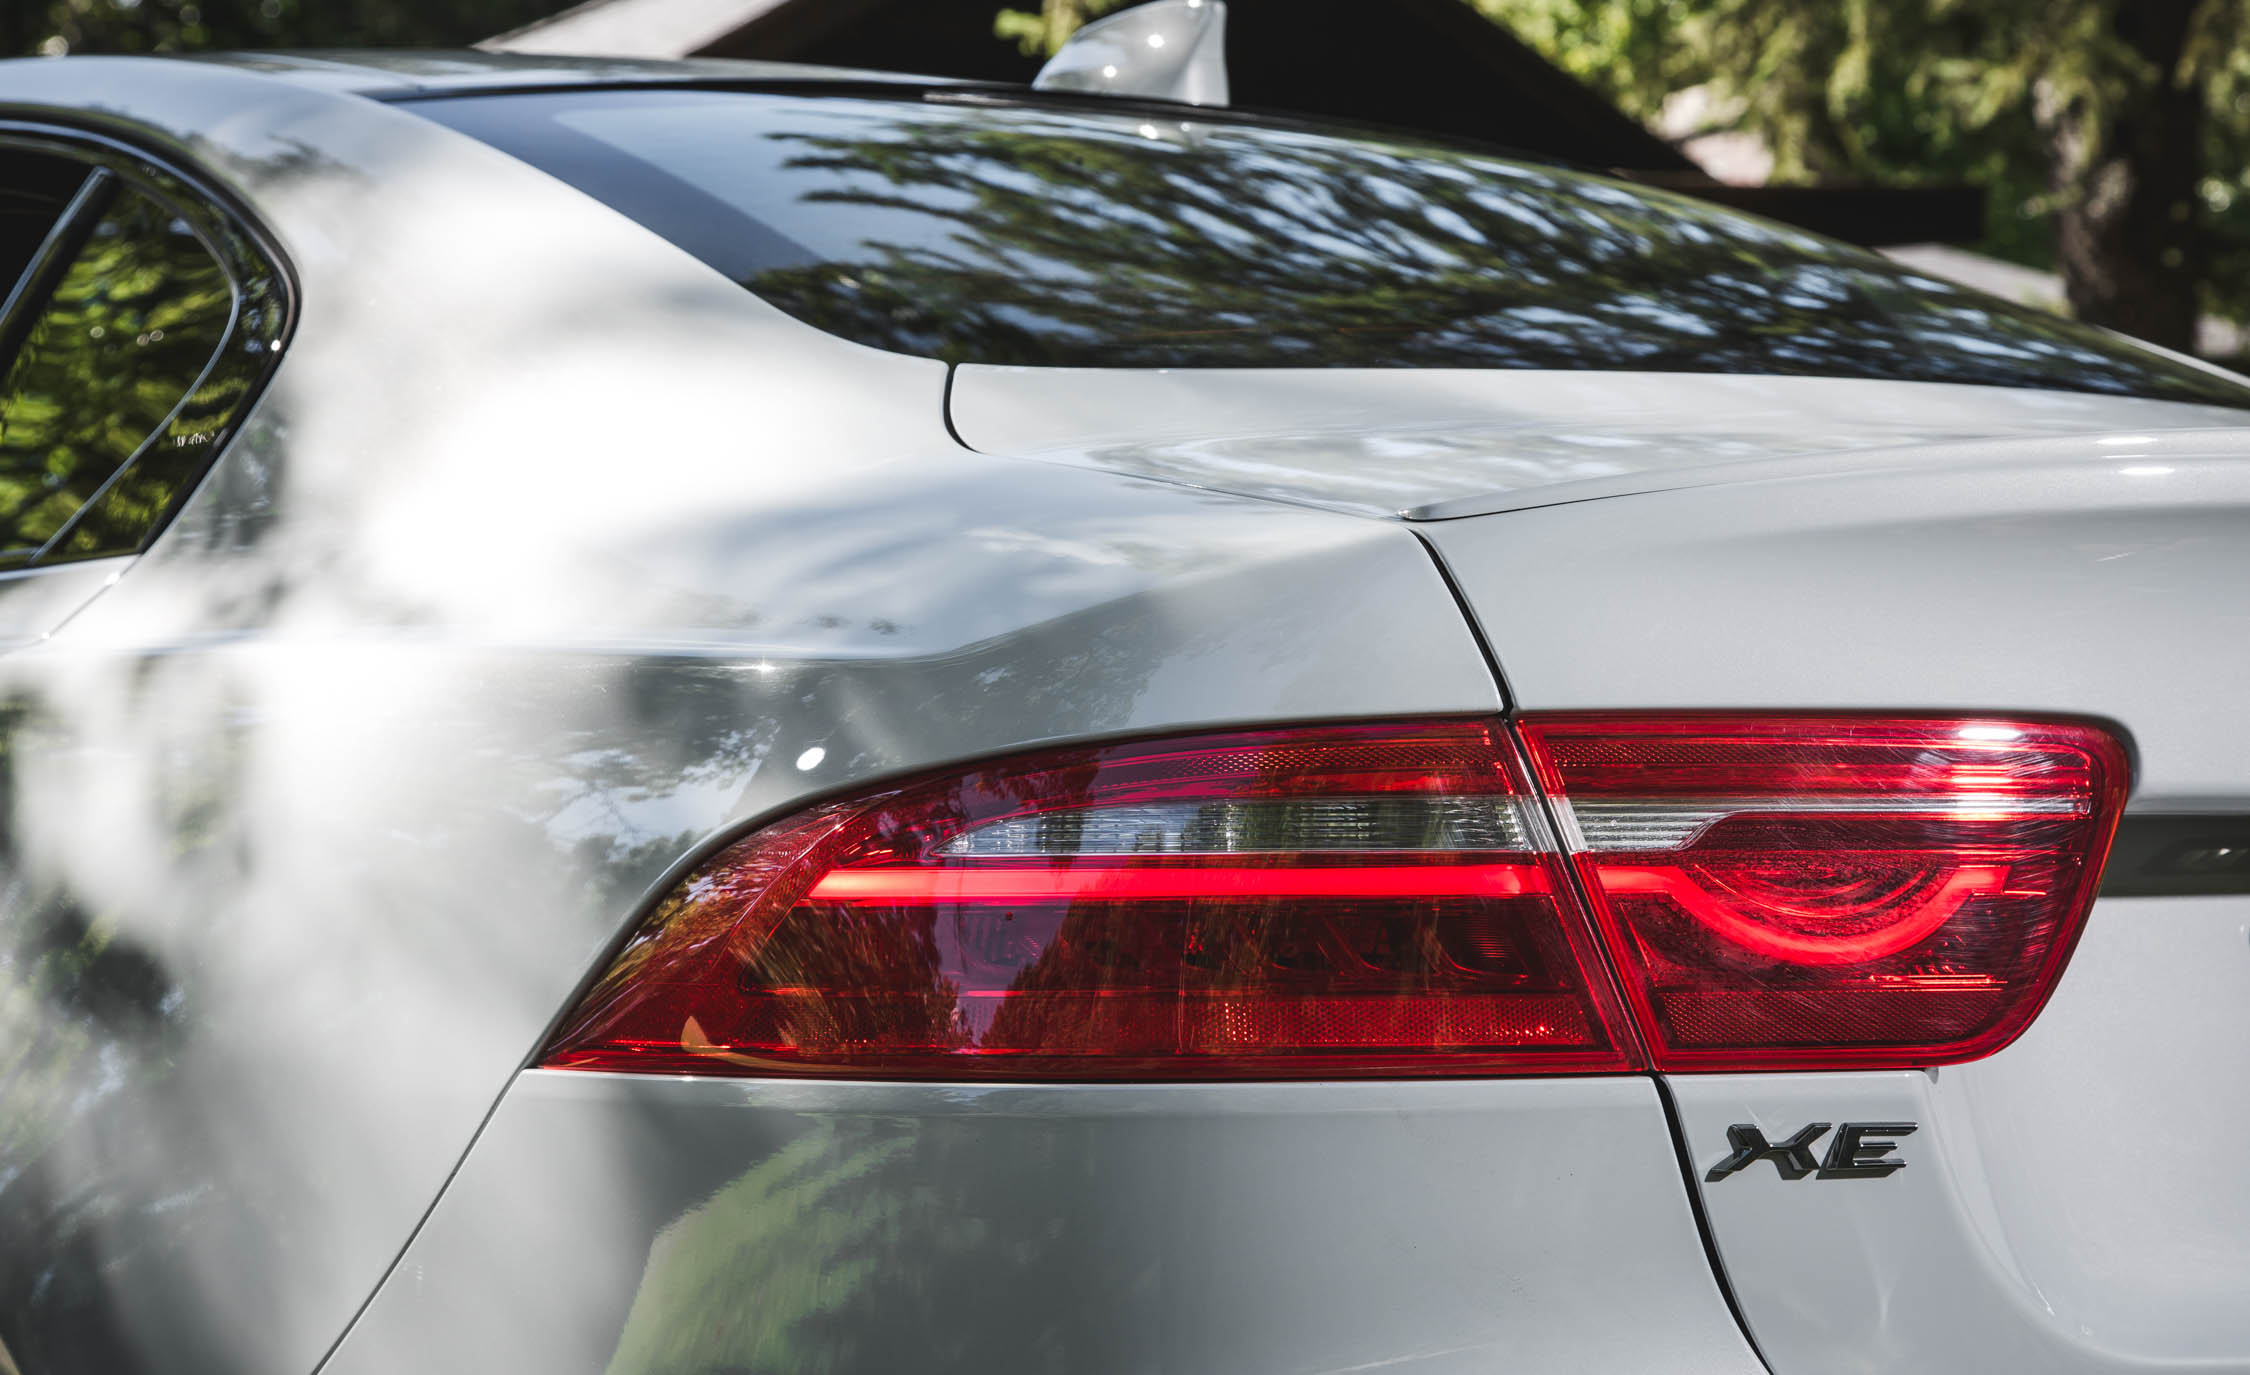 2017 Jaguar Xe White Exterior View Taillight (View 4 of 32)